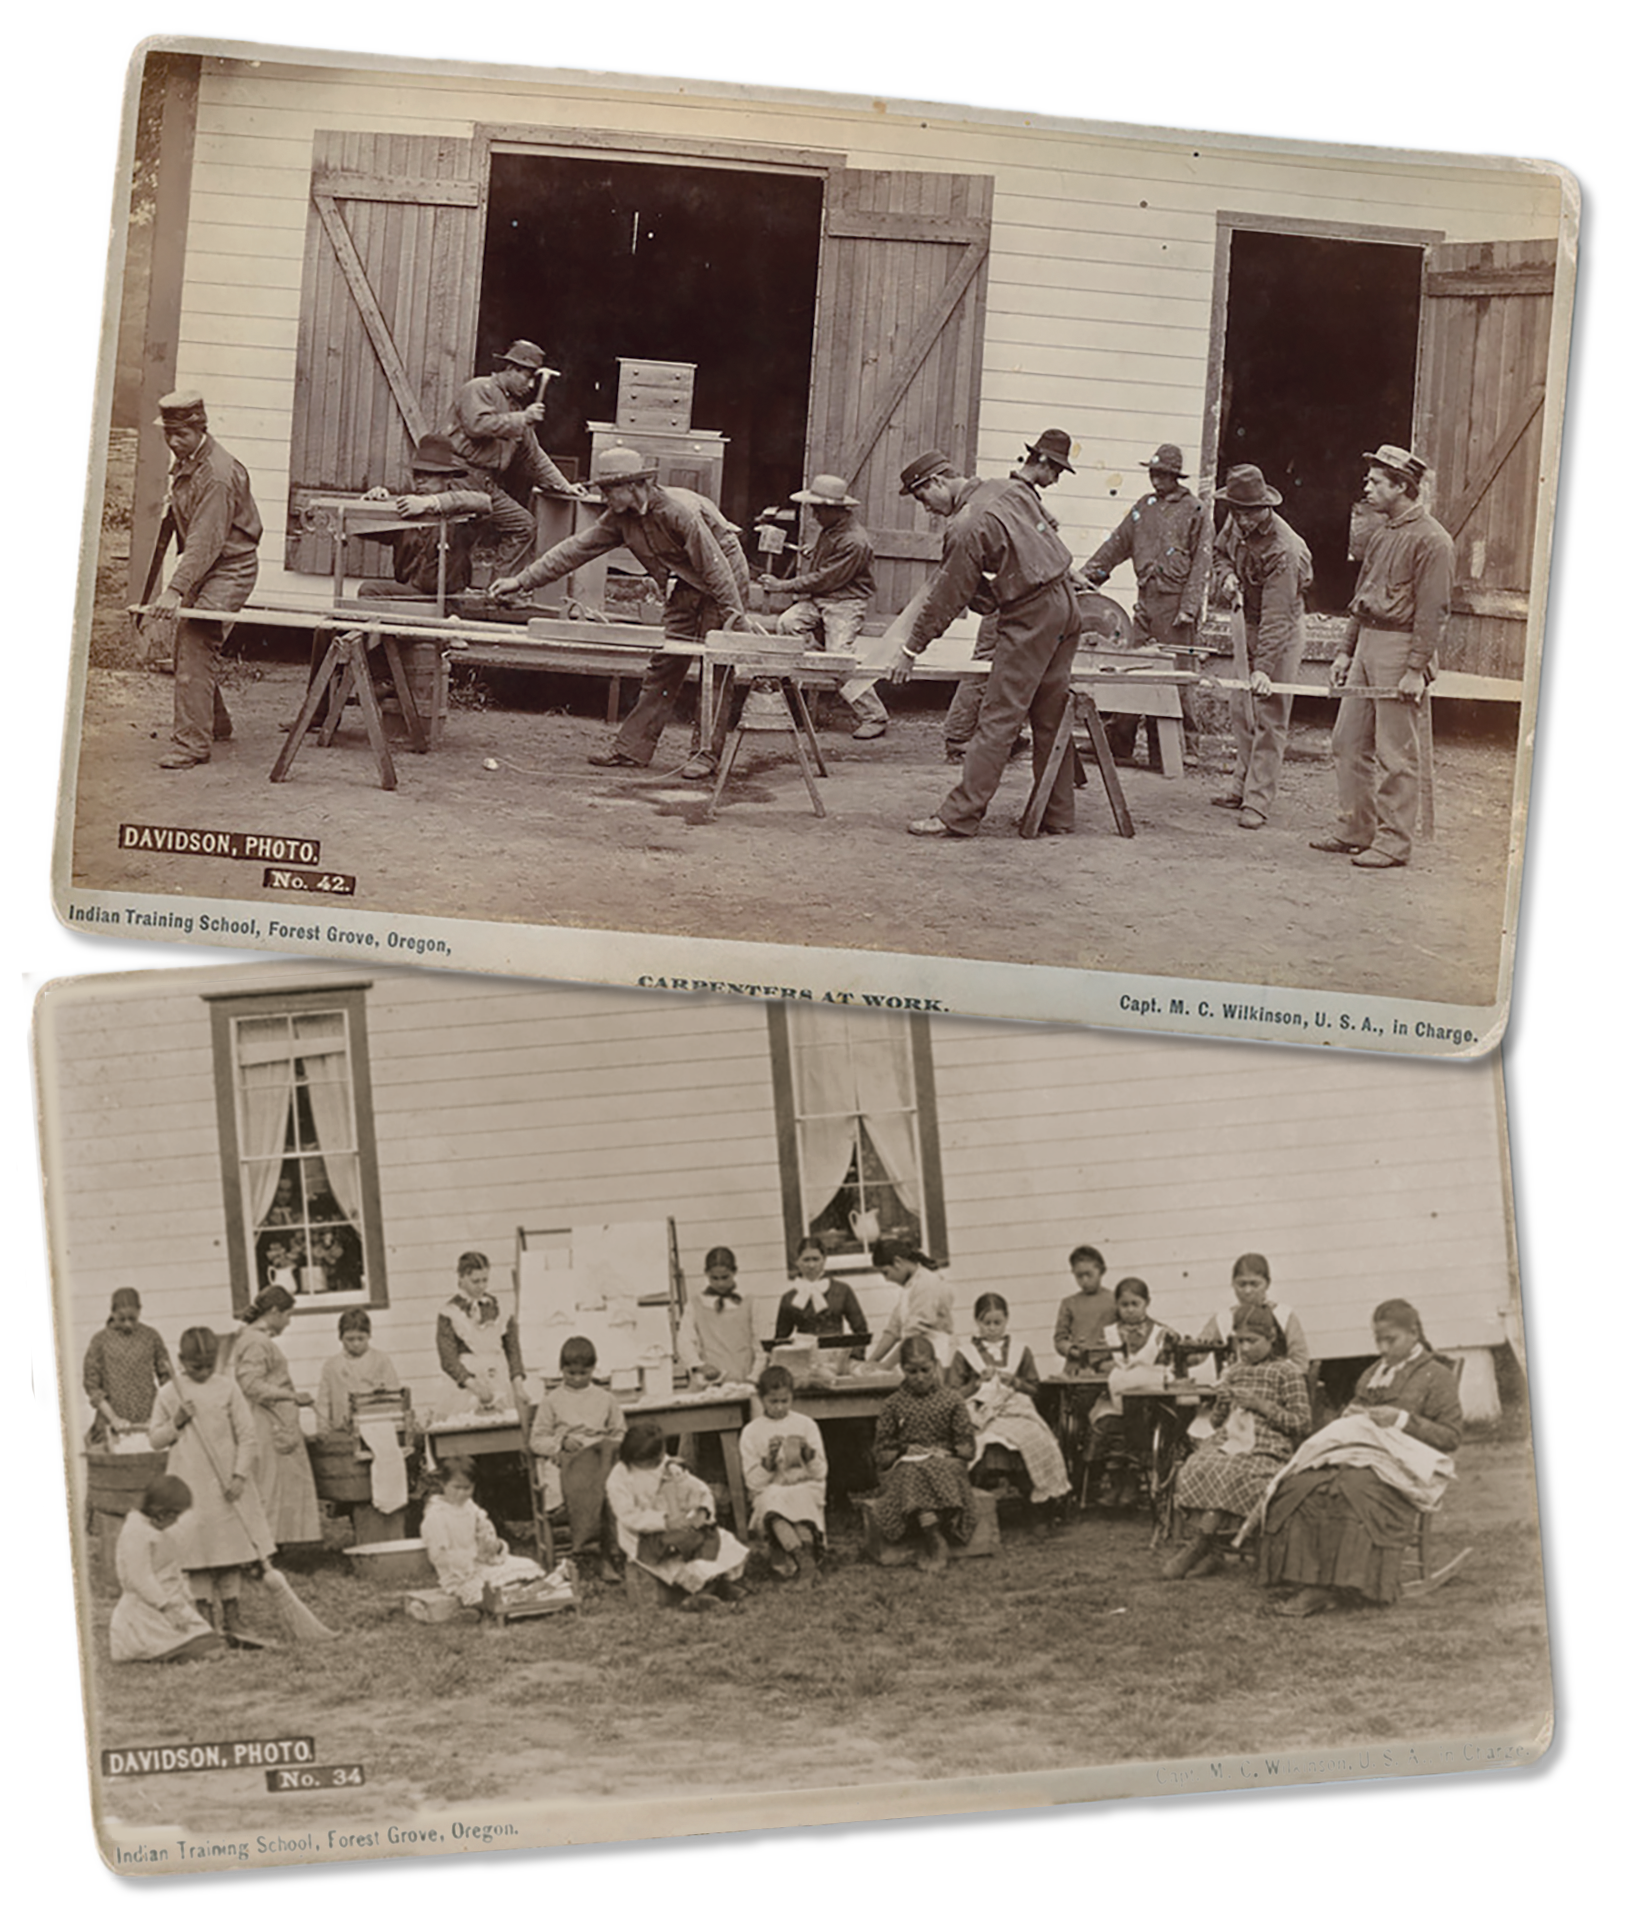 Two archival photographs depicting a men's carpentry class and women's homemaking class